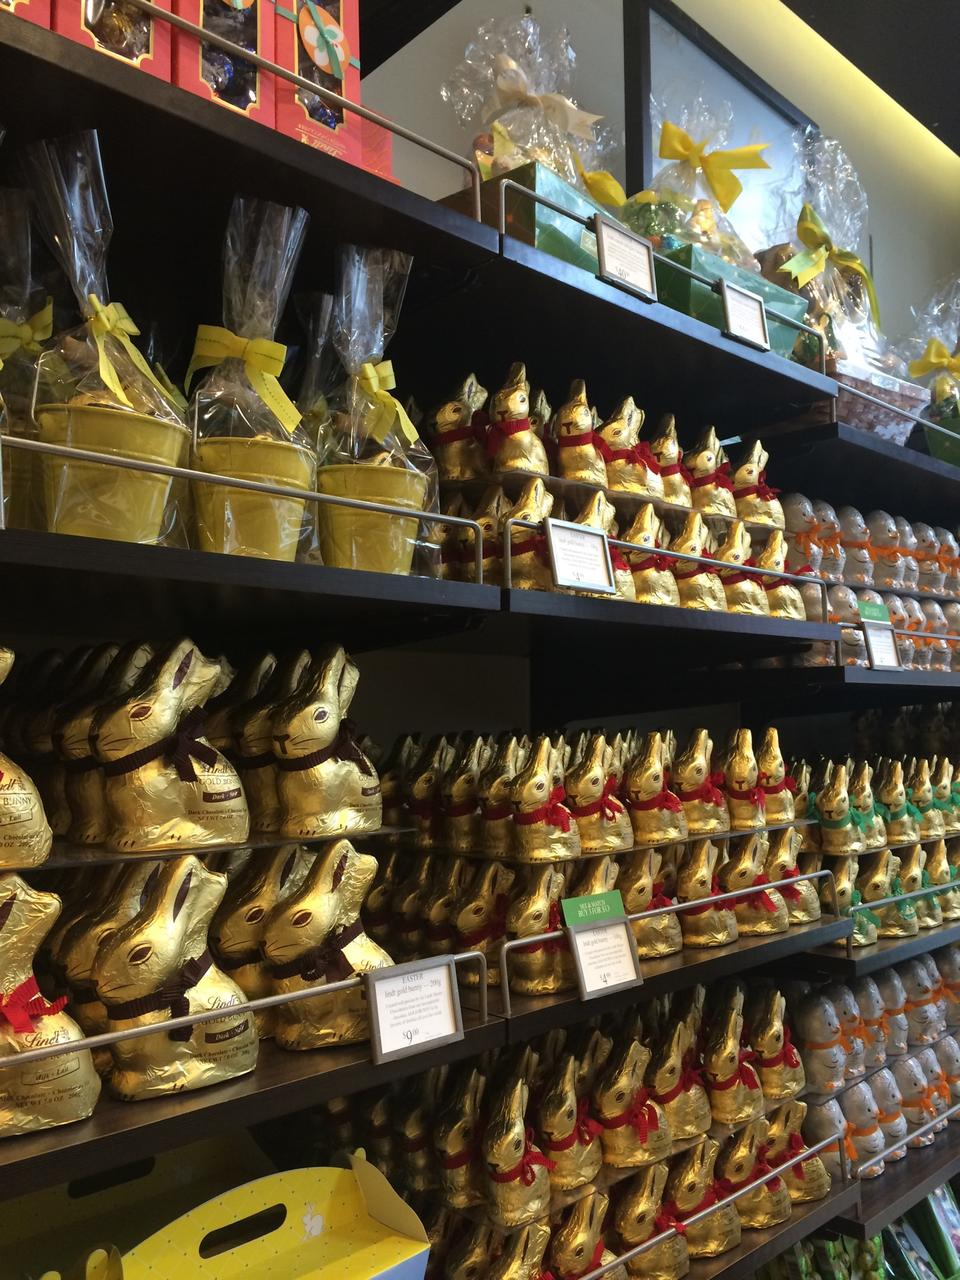 Lindt Chocolate's Easter display with chocolate rabbits in gold foil and bows wrapped around their necks. MEP designed by 2LS Consulting Engineering.